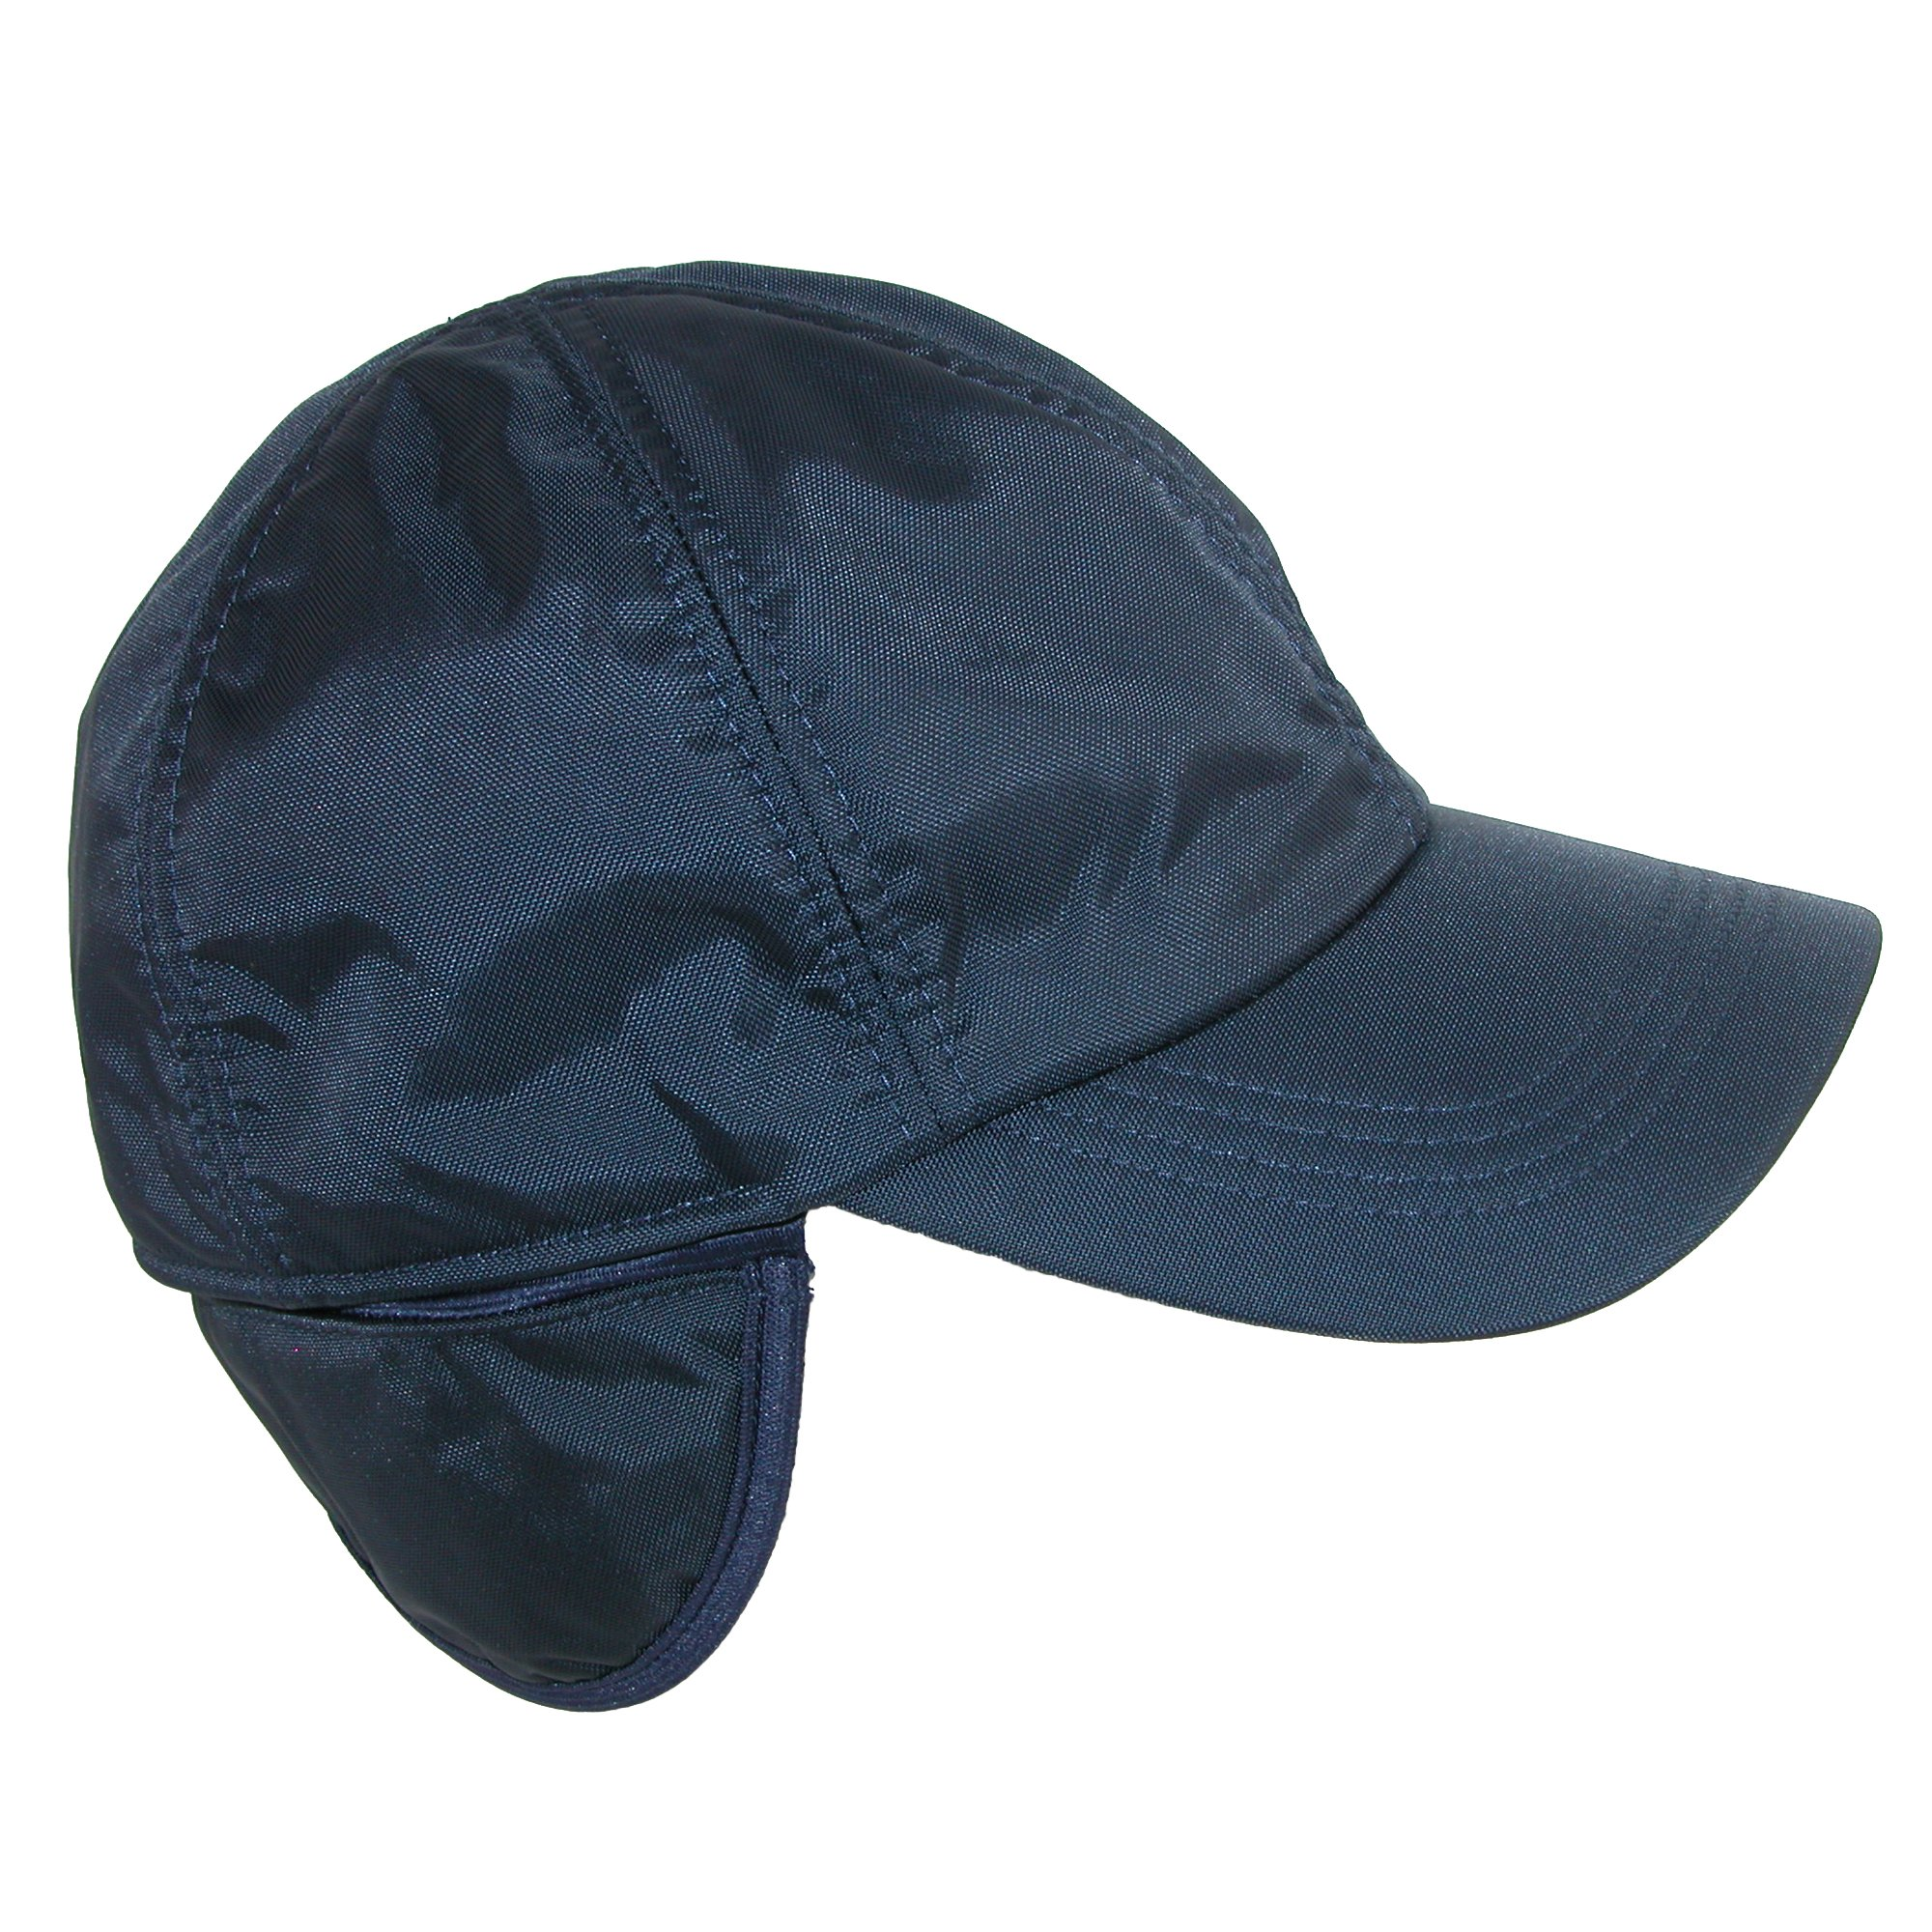 Wigens Men's Classic Nylon Baseball Cap with Faux Fur Lining and Earflaps, 59